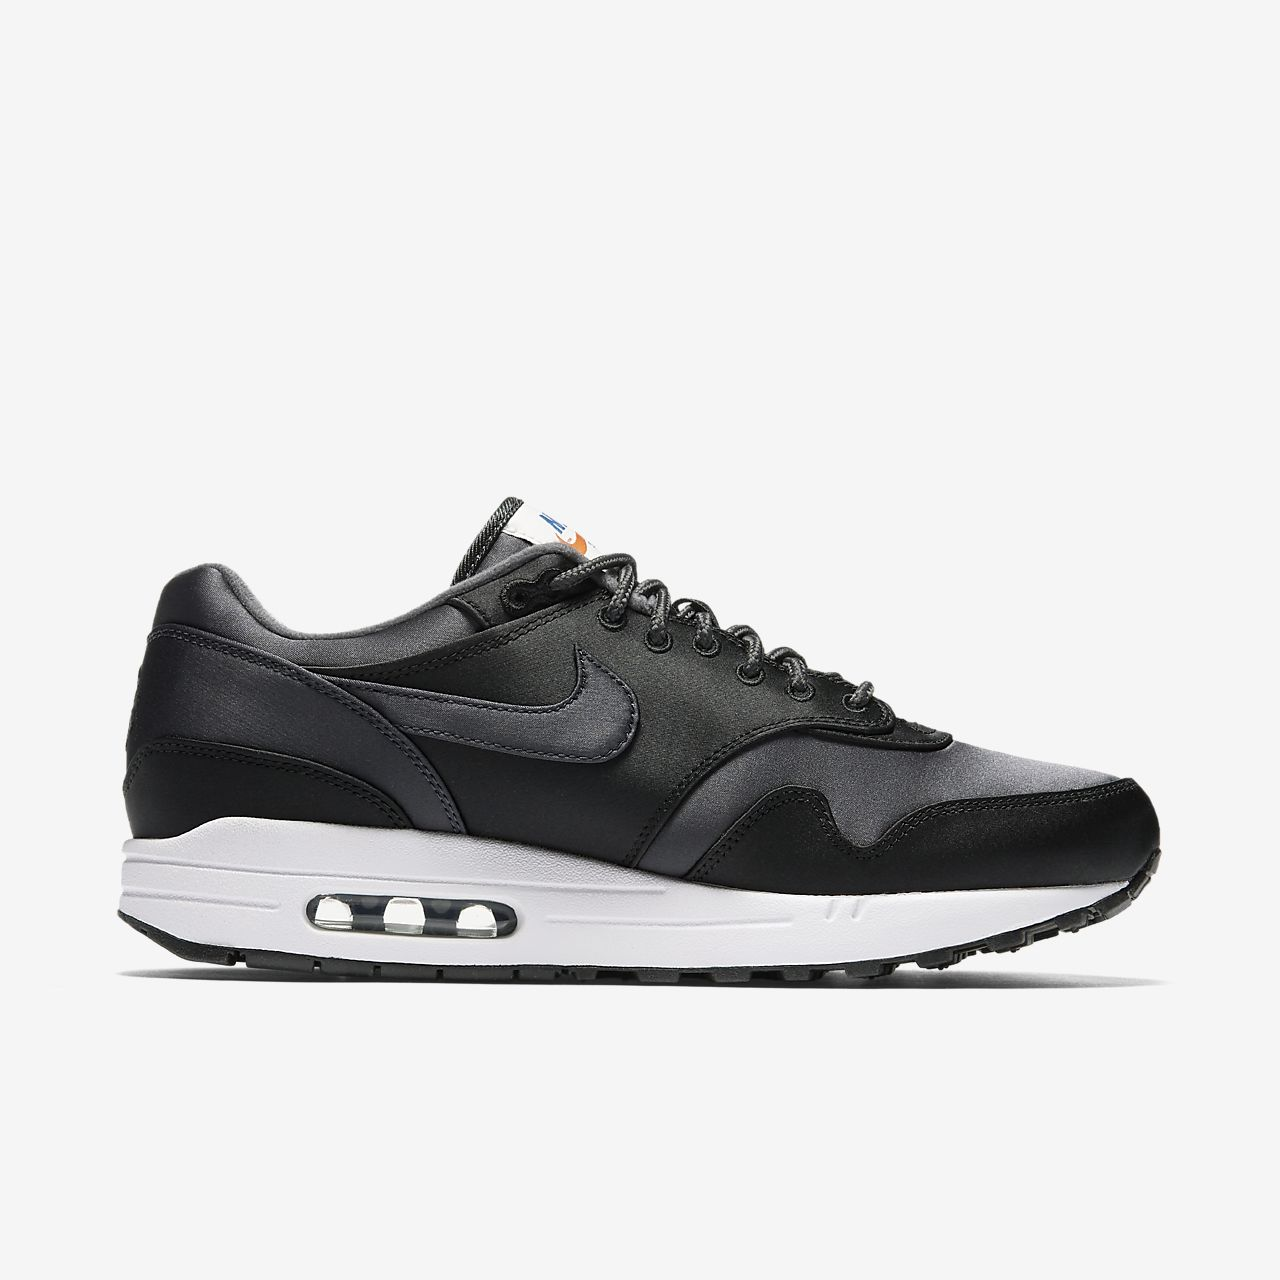 Marques Chaussure homme Nike homme Nike Air Max 1 Se Black/Anthracite-White